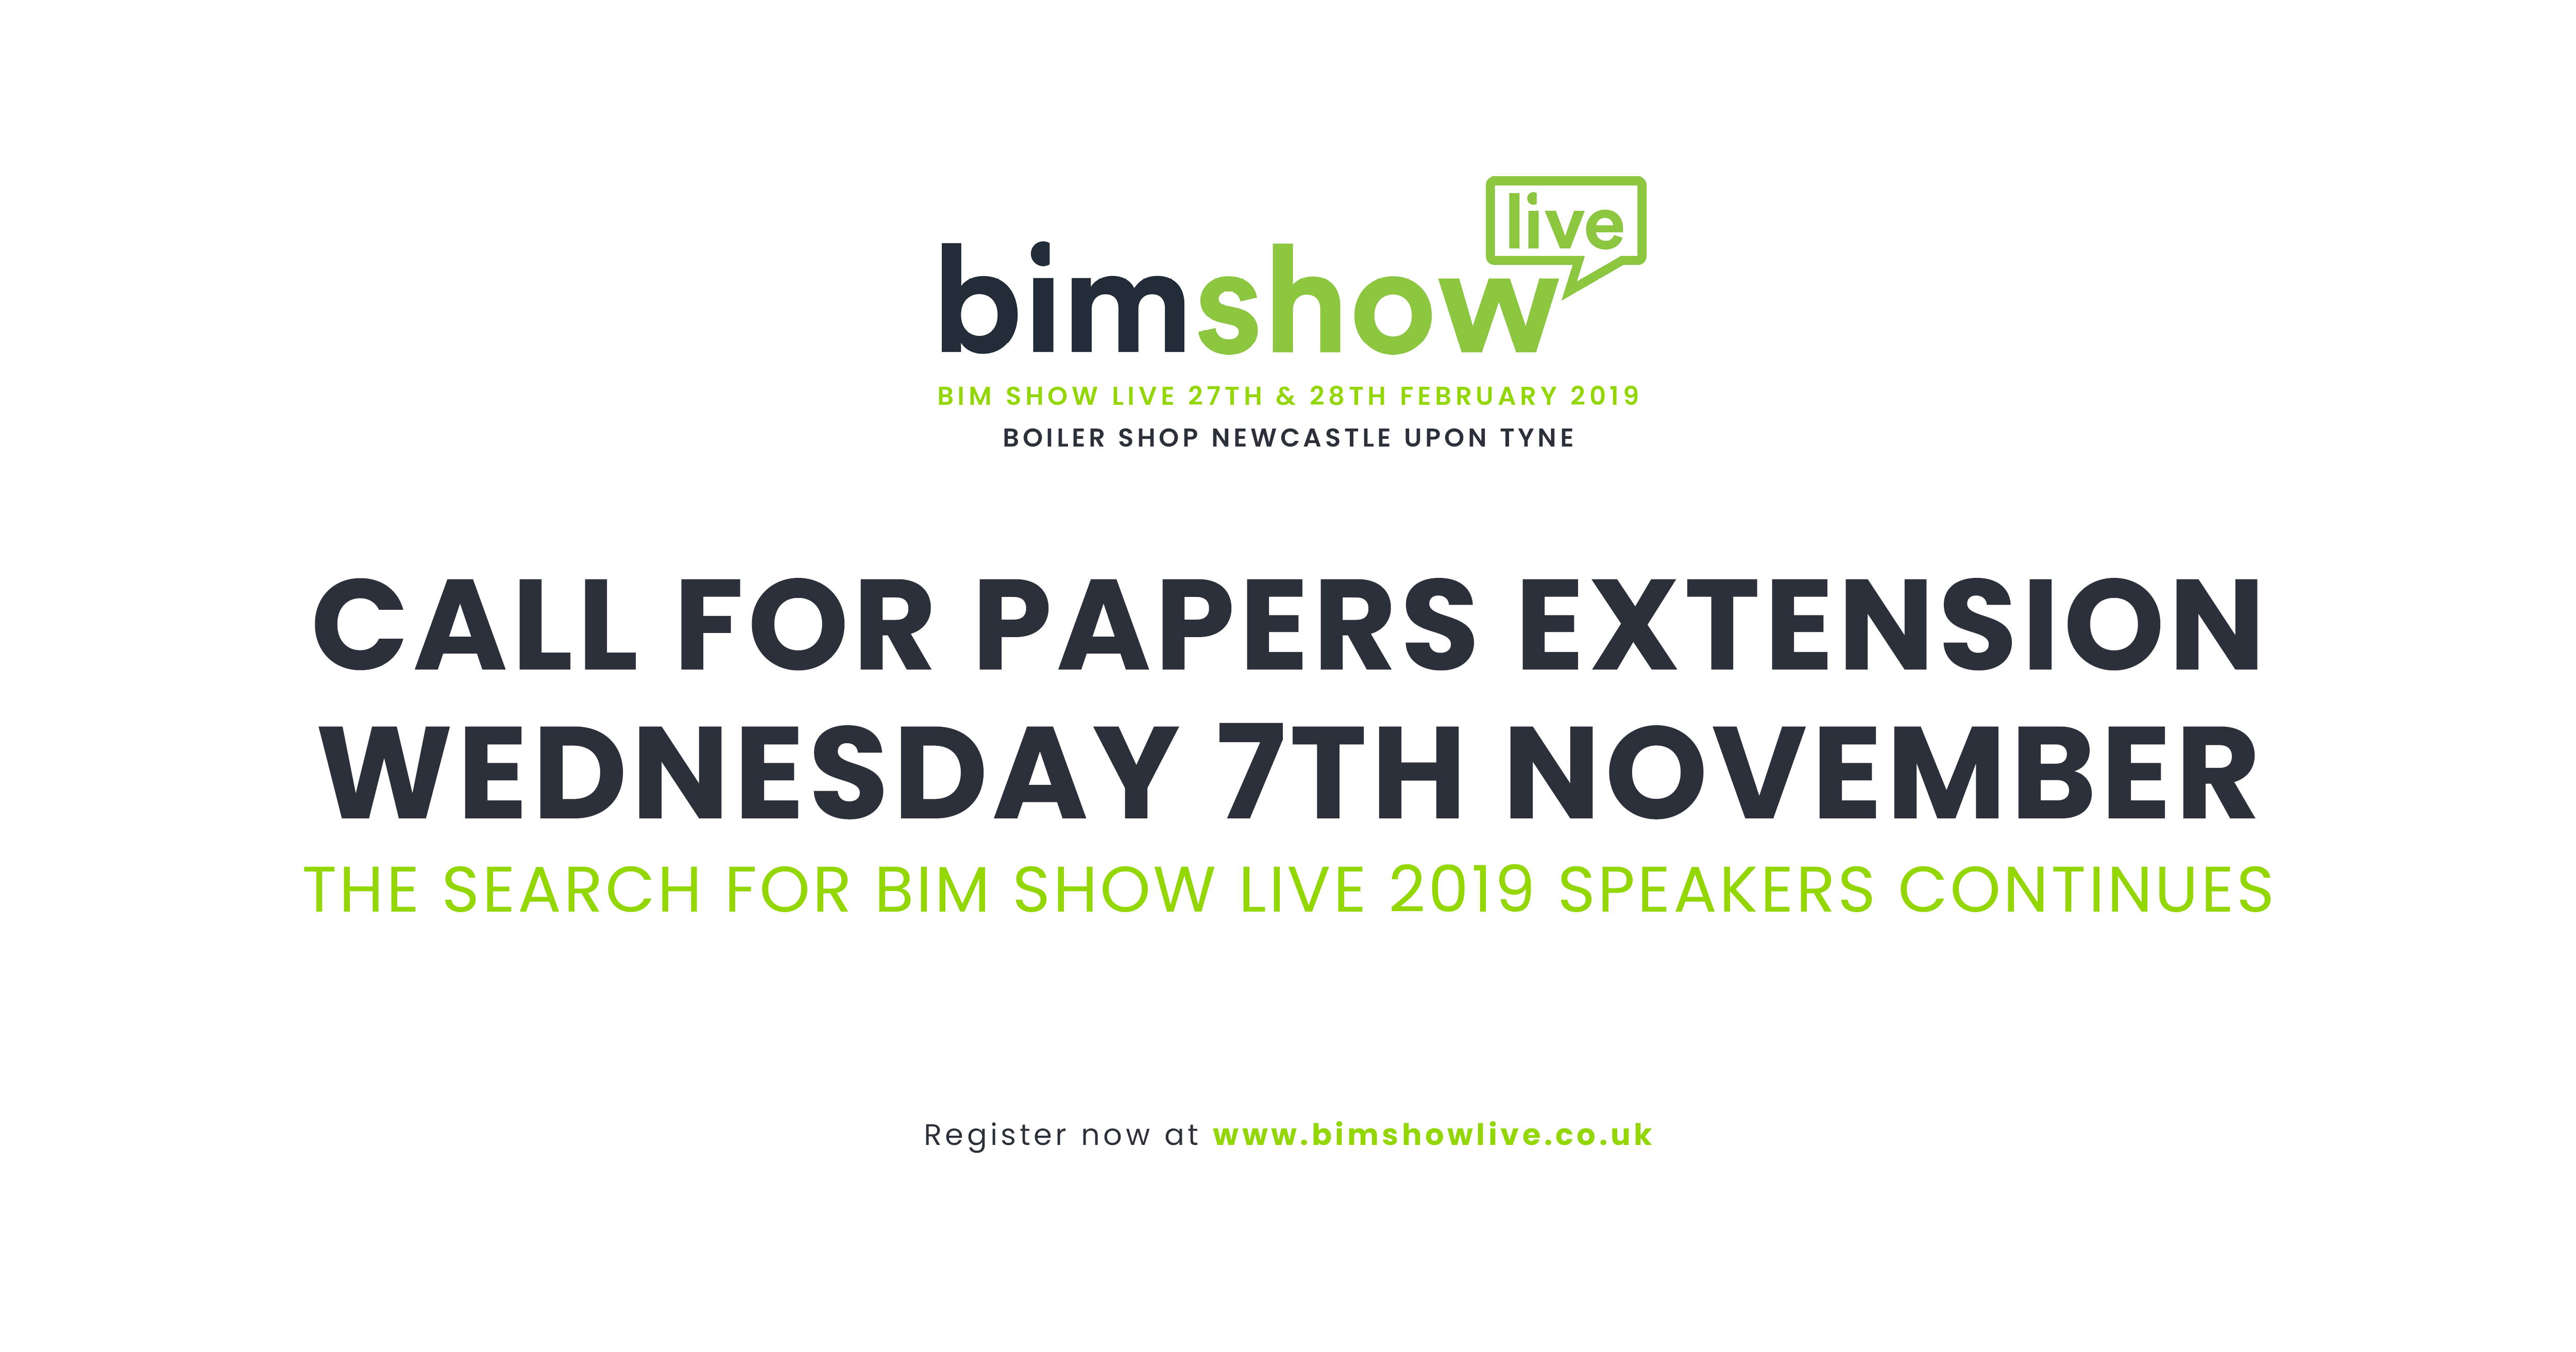 Logo: BIM Show Live Call for Papers deadline extends to November 7th 2018